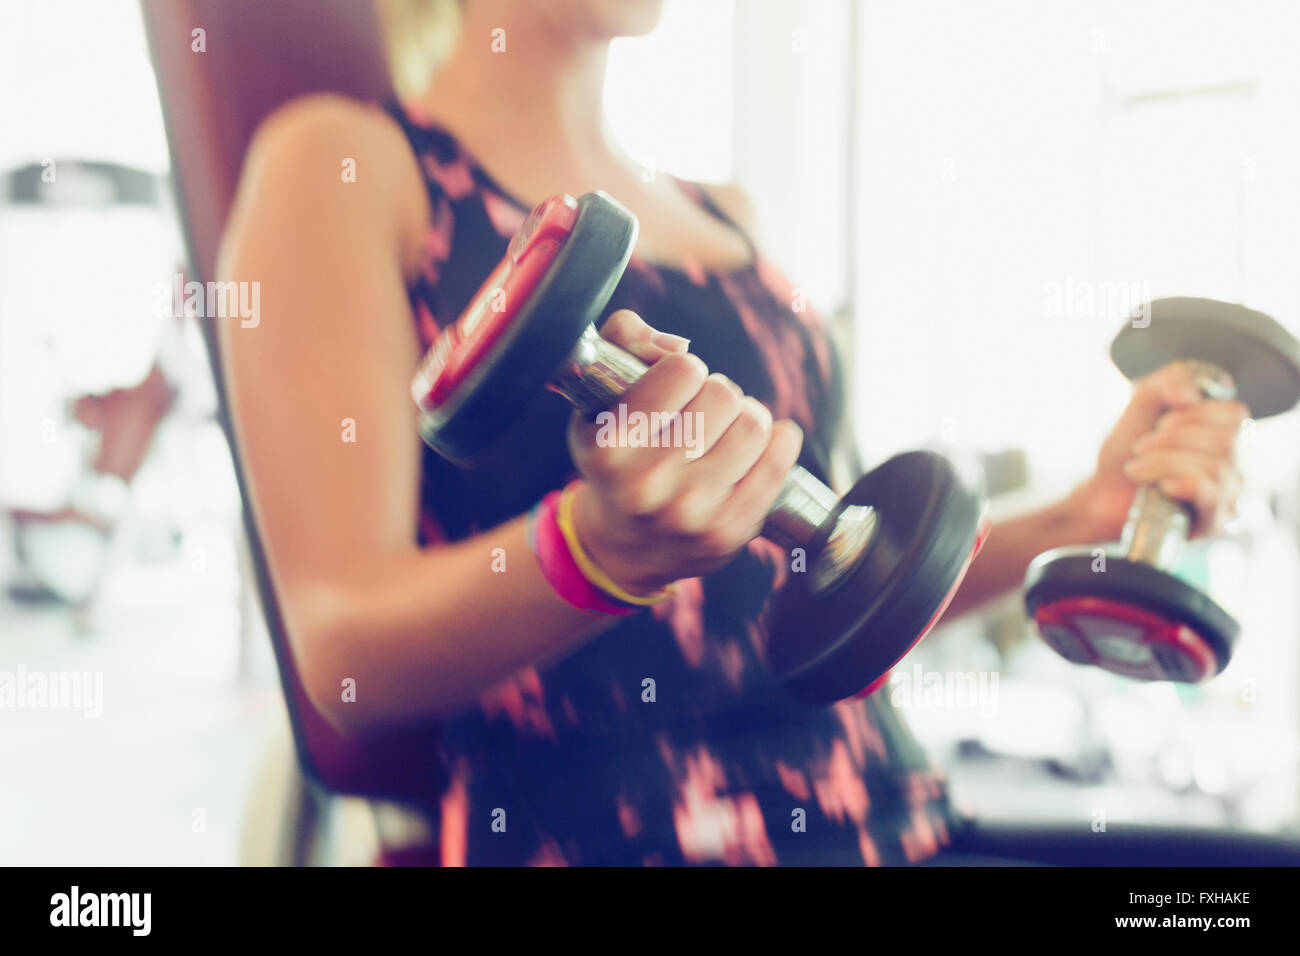 Blurred motion doing dumbbell biceps curls at gym - Stock Image